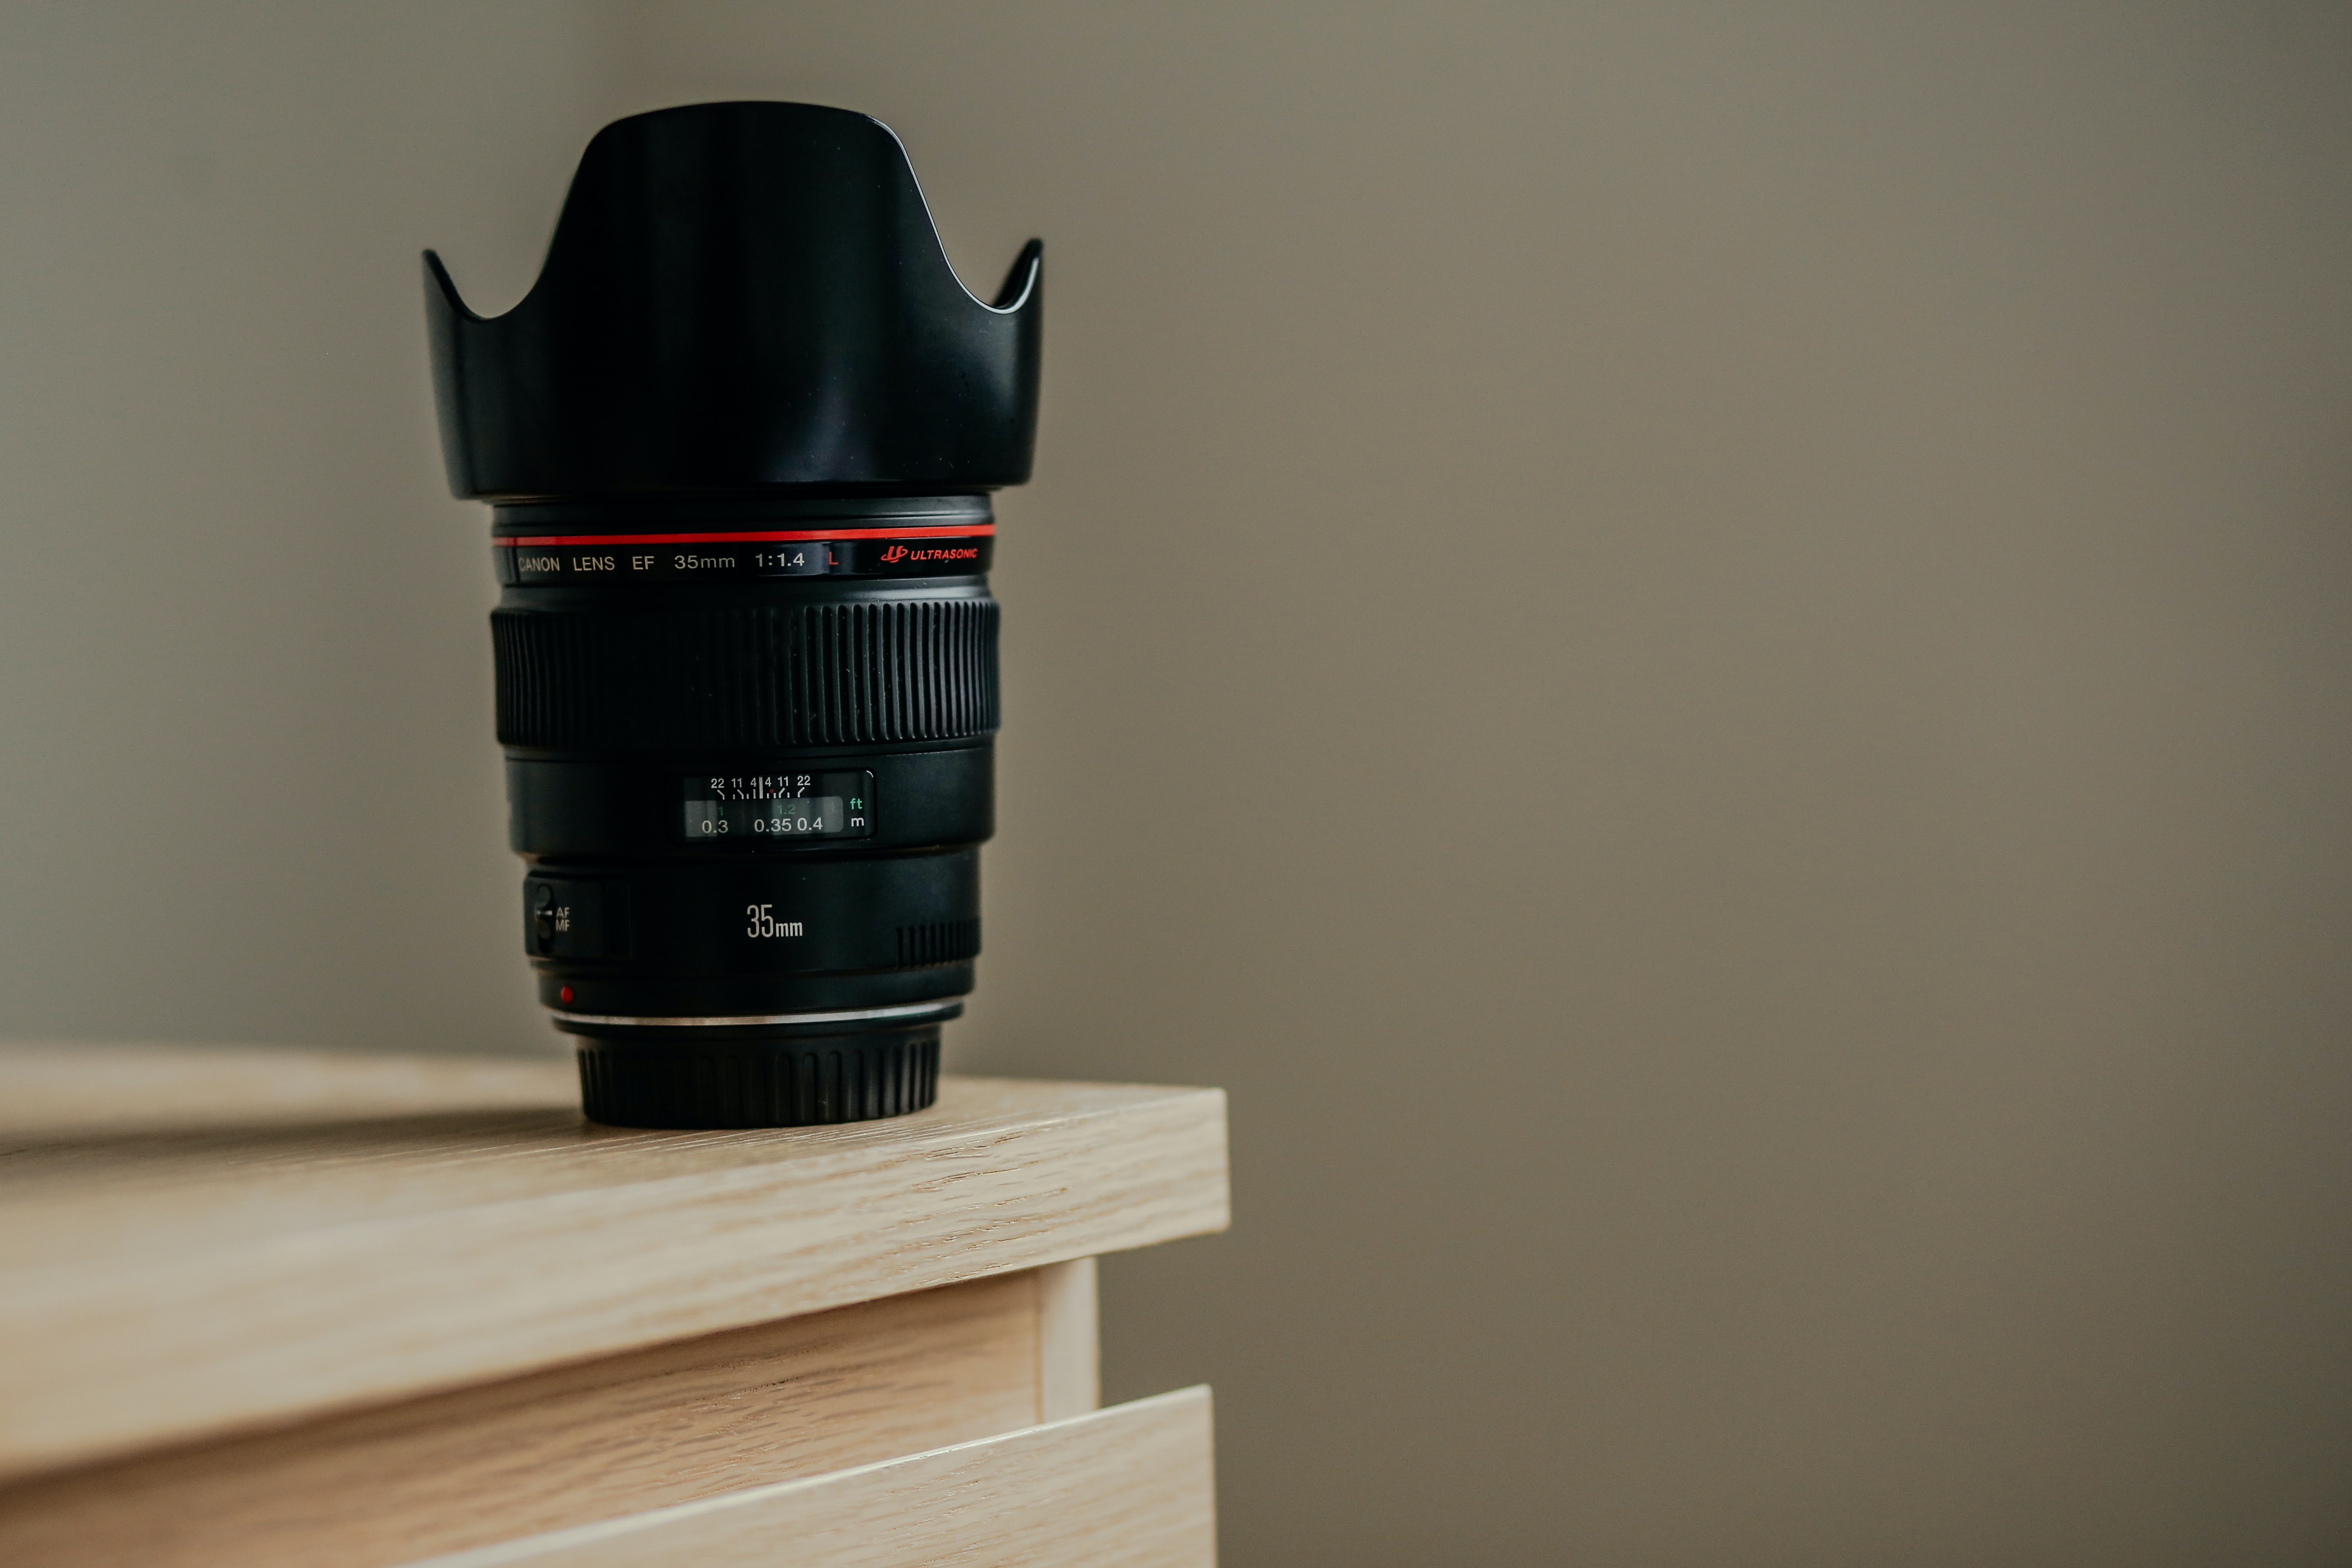 A long camera lens on the edge of a wooden surface